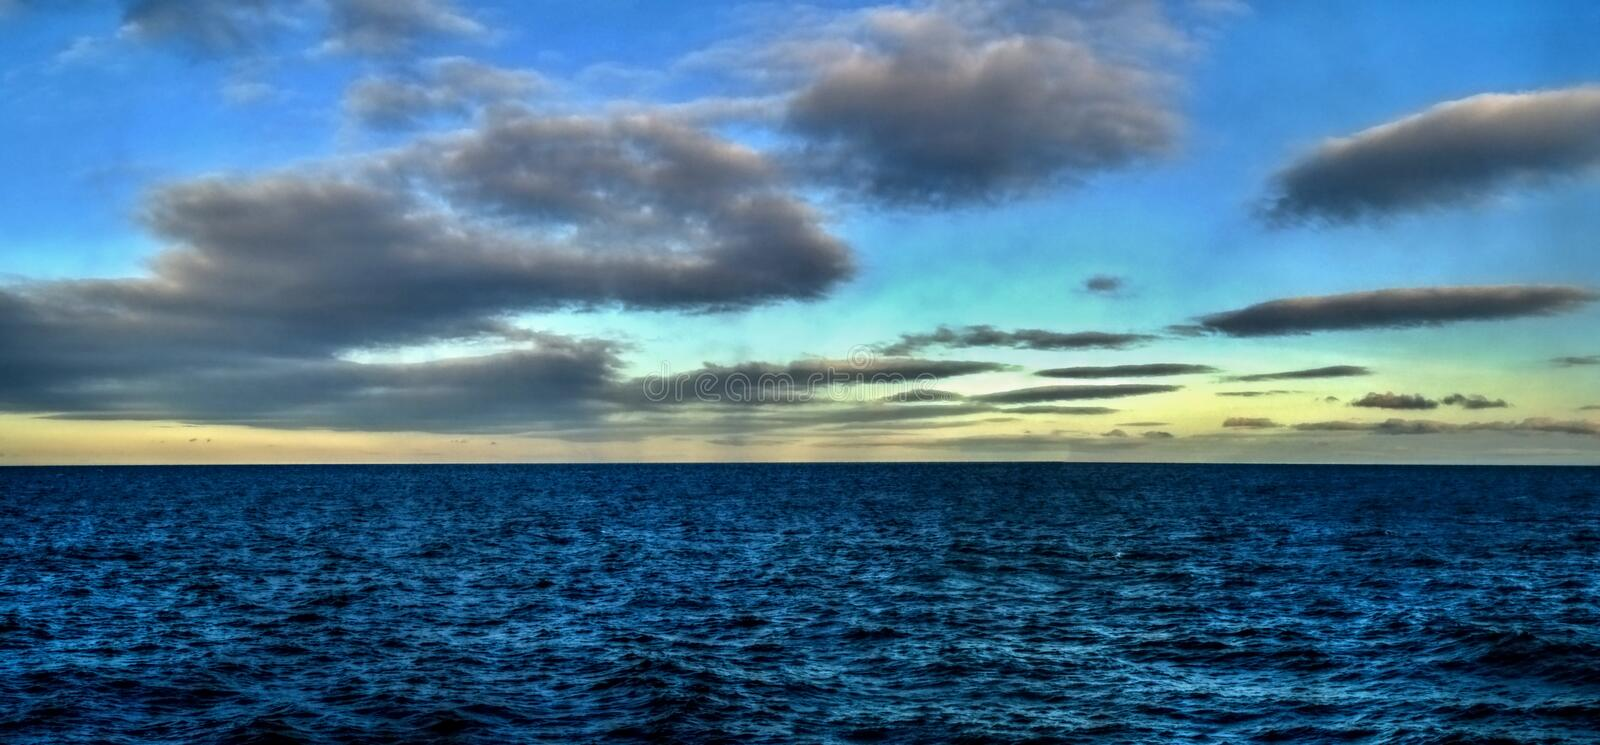 The sky and clouds Bering sea royalty free stock image